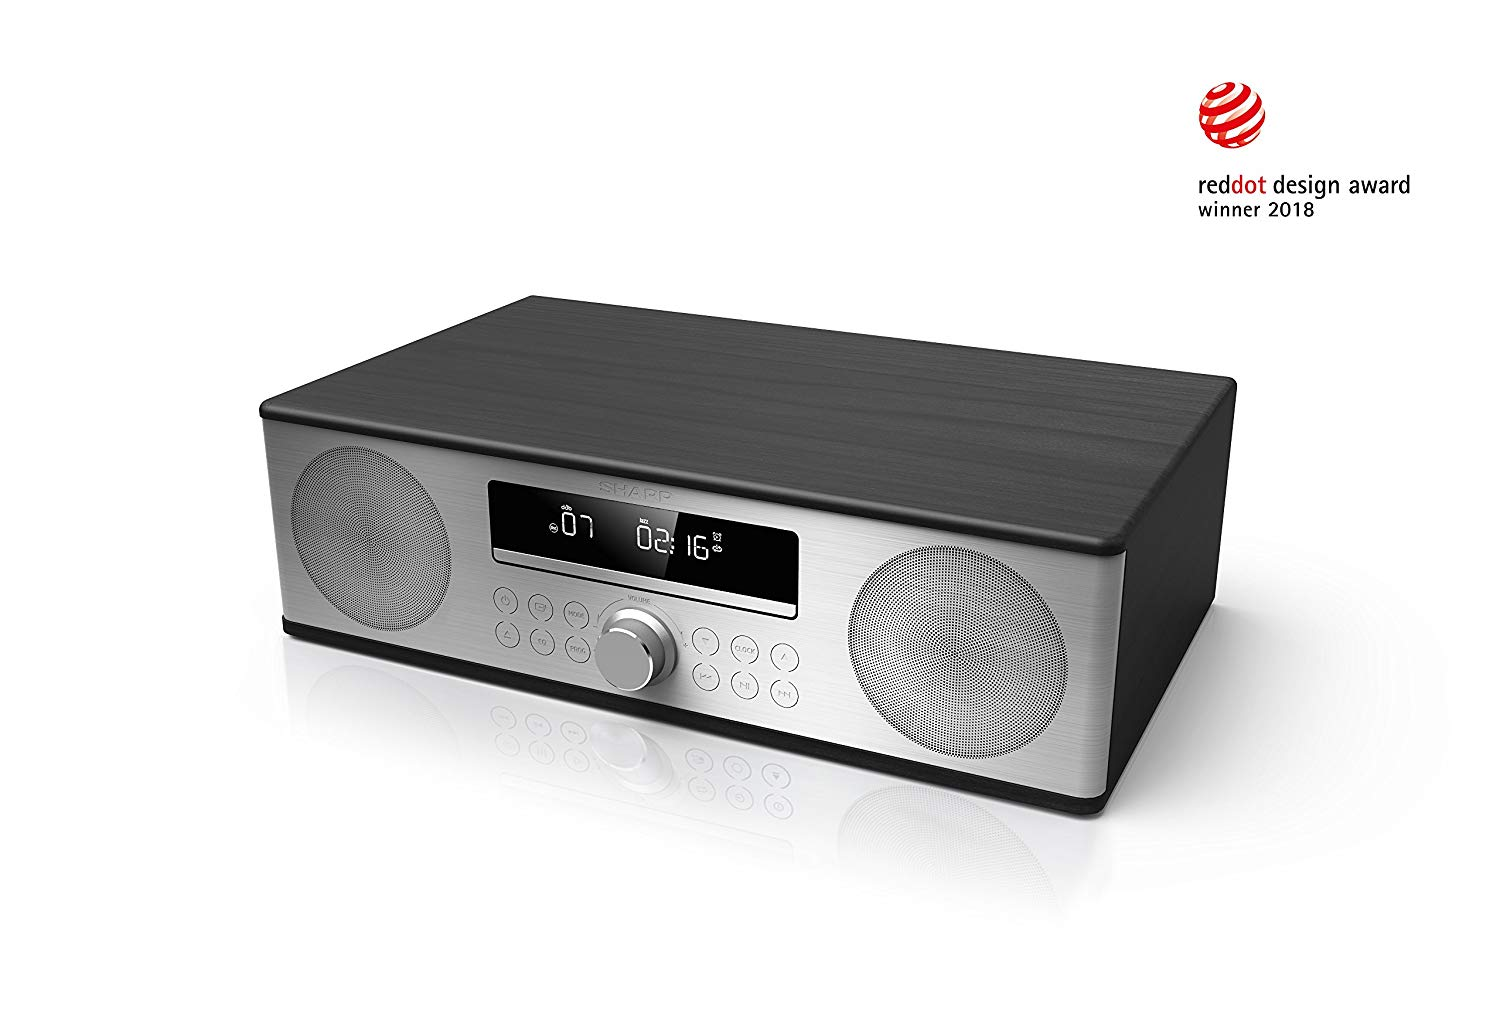 Sharp XL-B715D(BK) 90W All-In-One Micro Hi-Fi Audio System for £119.00